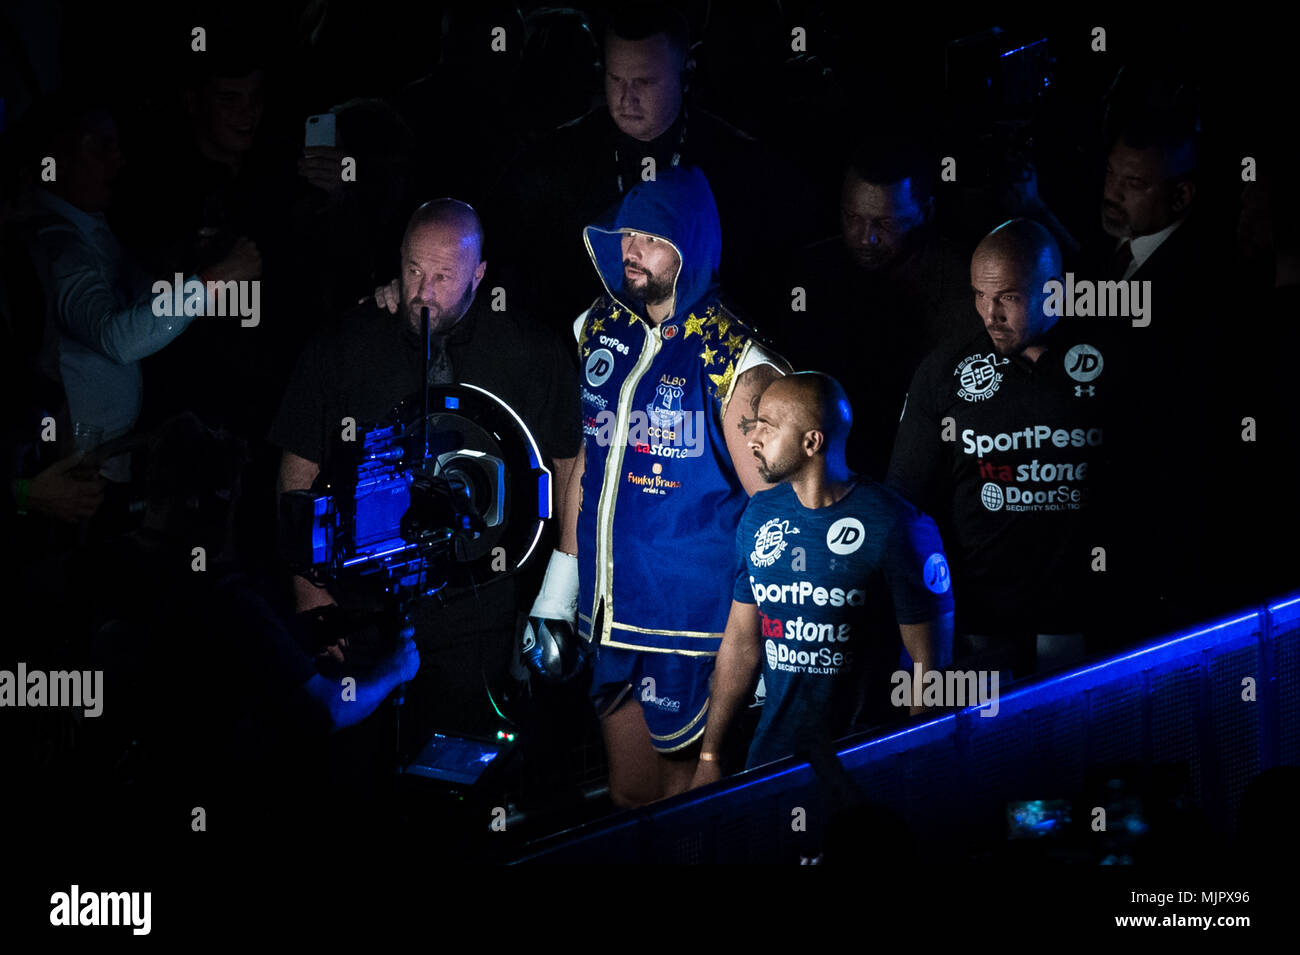 London, UK. 5th May, 2018. Bellew vs Haye heavyweight boxing rematch at The O2. Credit: Guy Corbishley/Alamy Live News - Stock Image